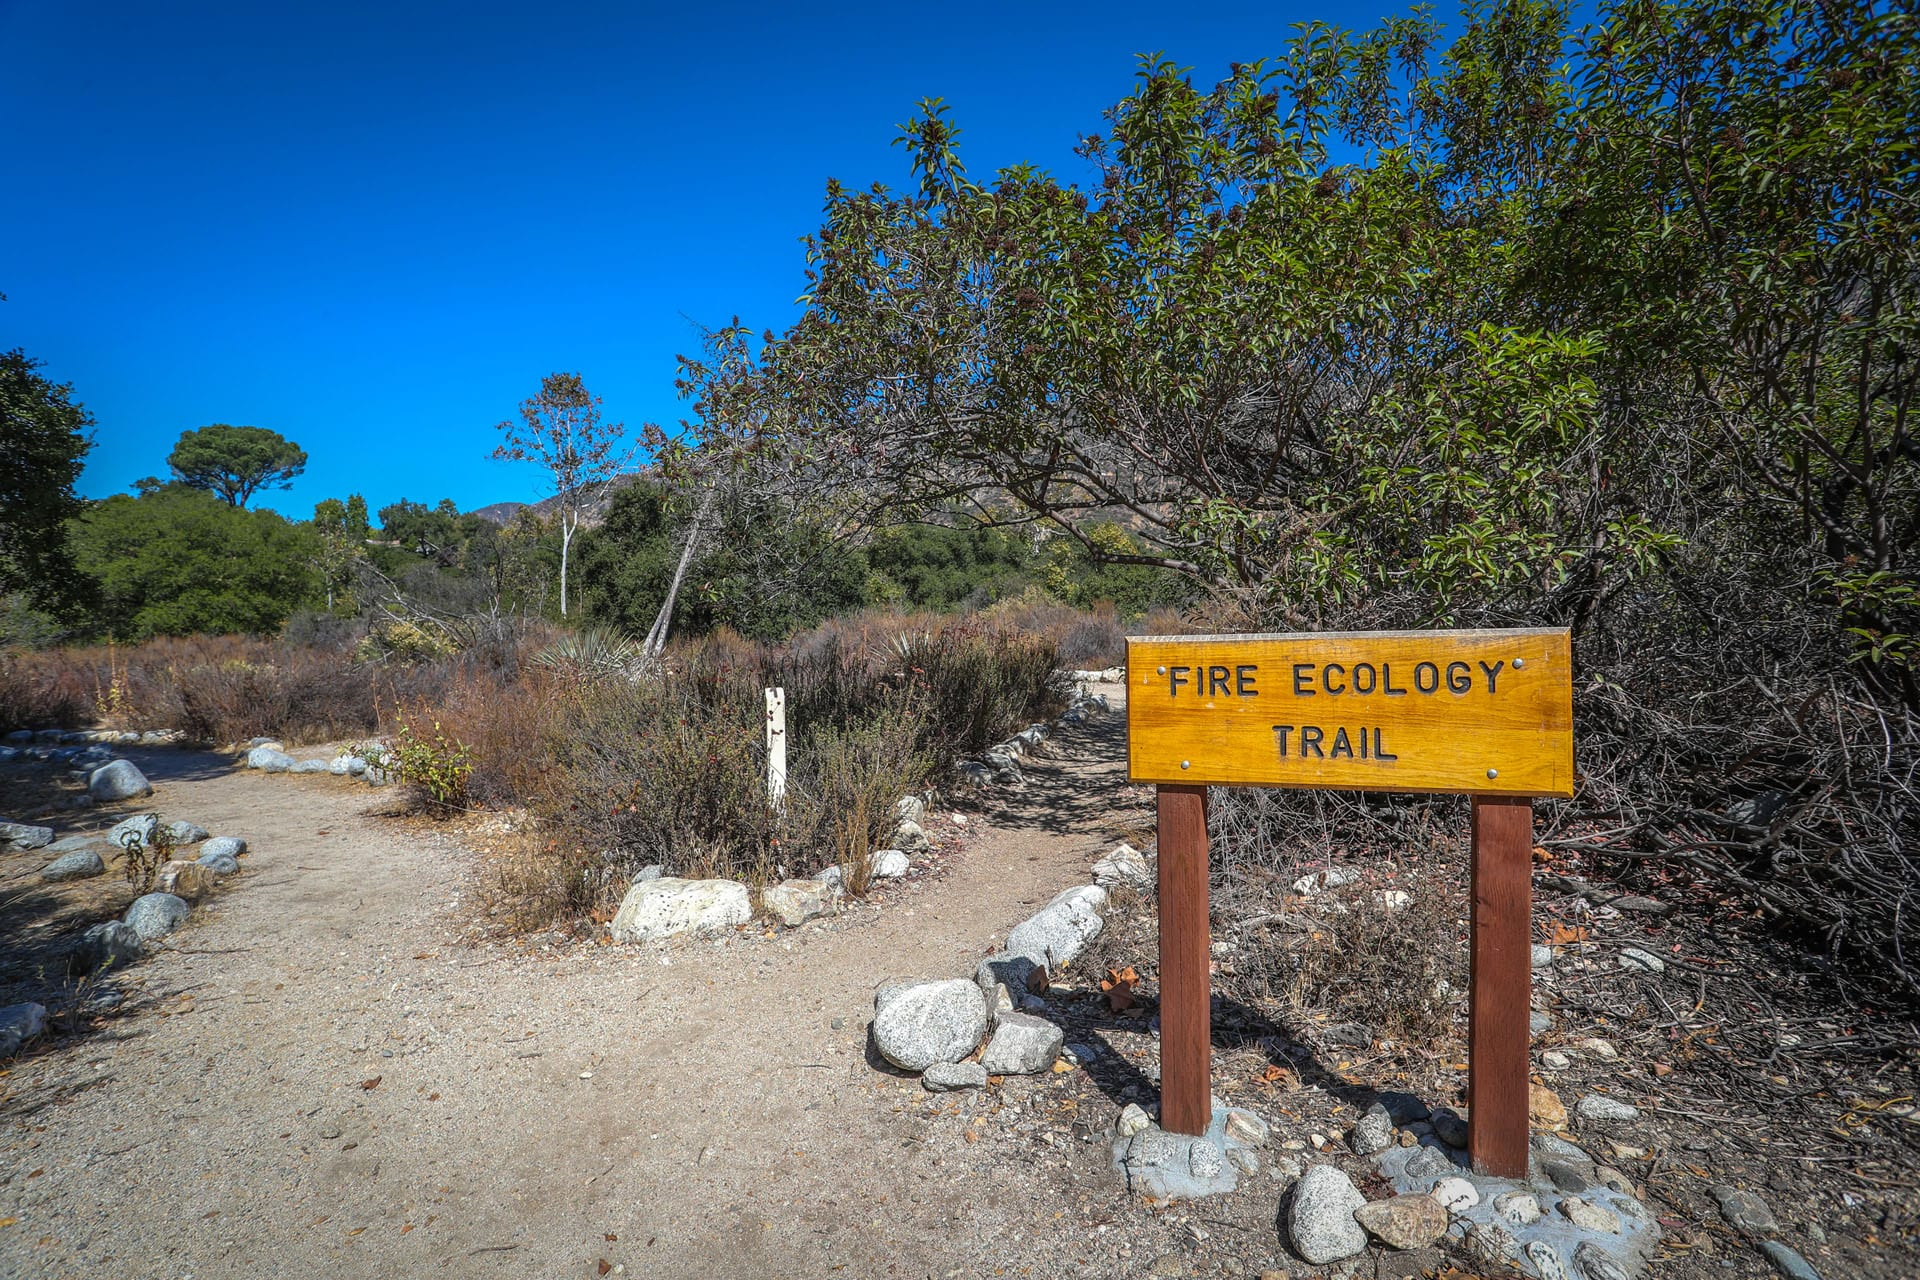 Fire Ecology Trail sign